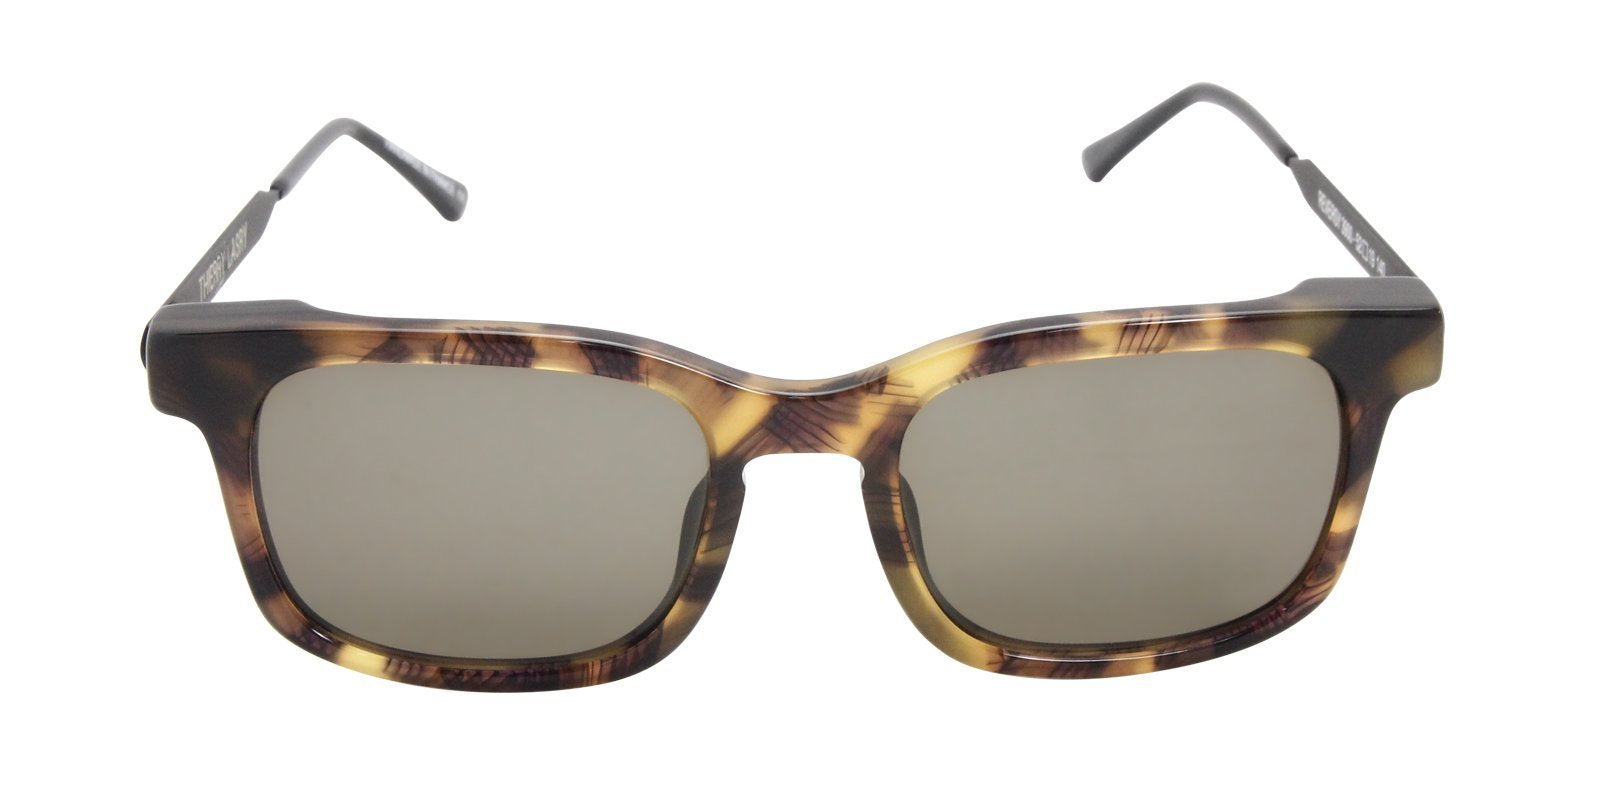 Thierry Lasry - Reversy Tortoise Rectangular Men, Women Sunglasses - 52mm-Sunglasses-Designer Eyes